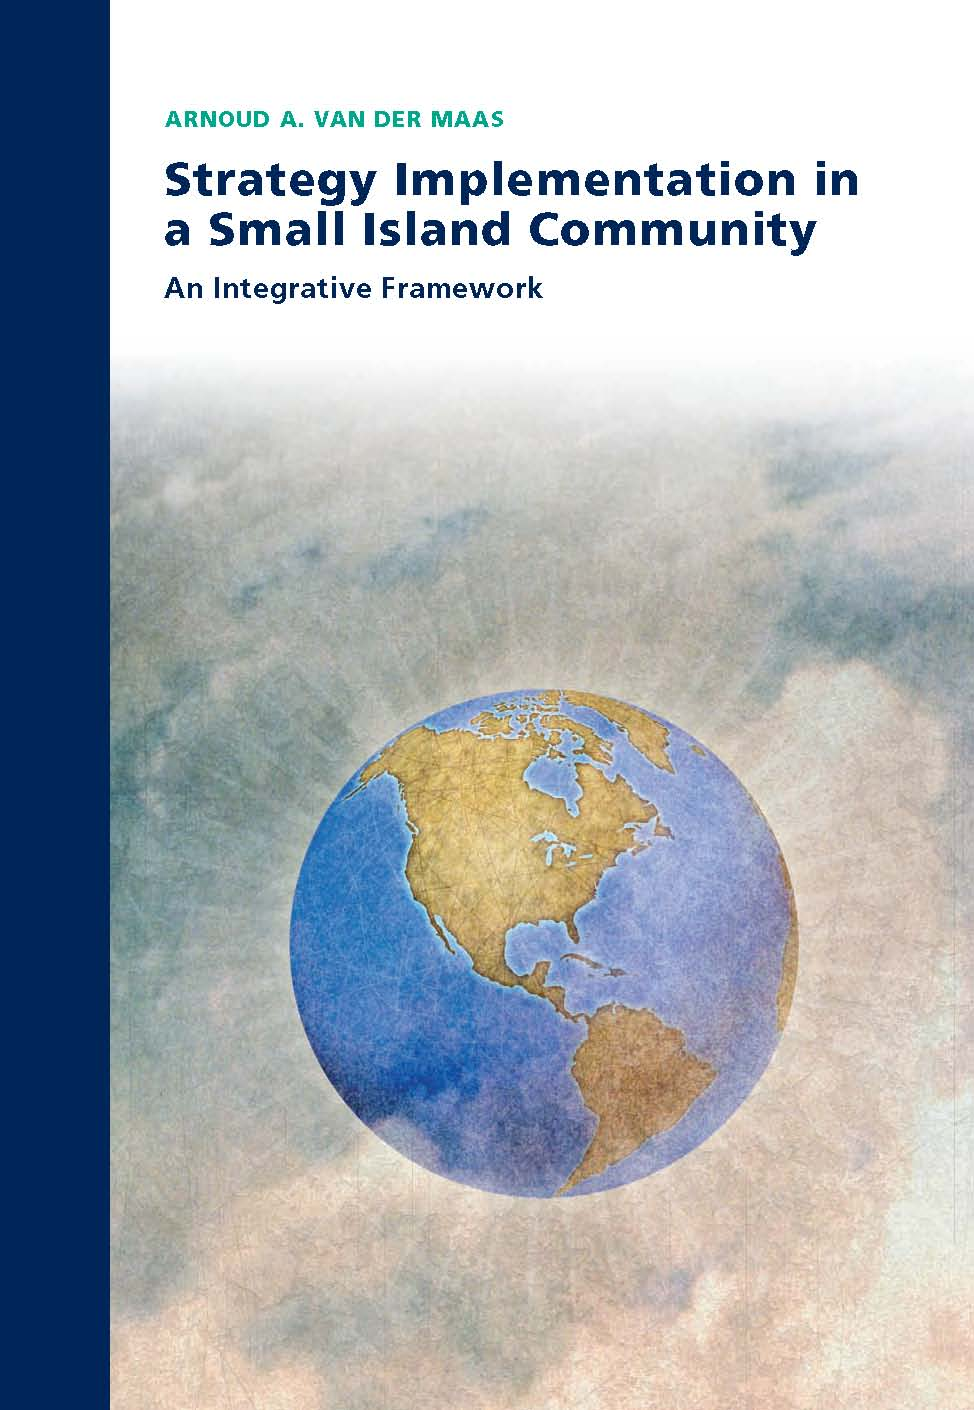 Strategy Implementation in a Small Island Community